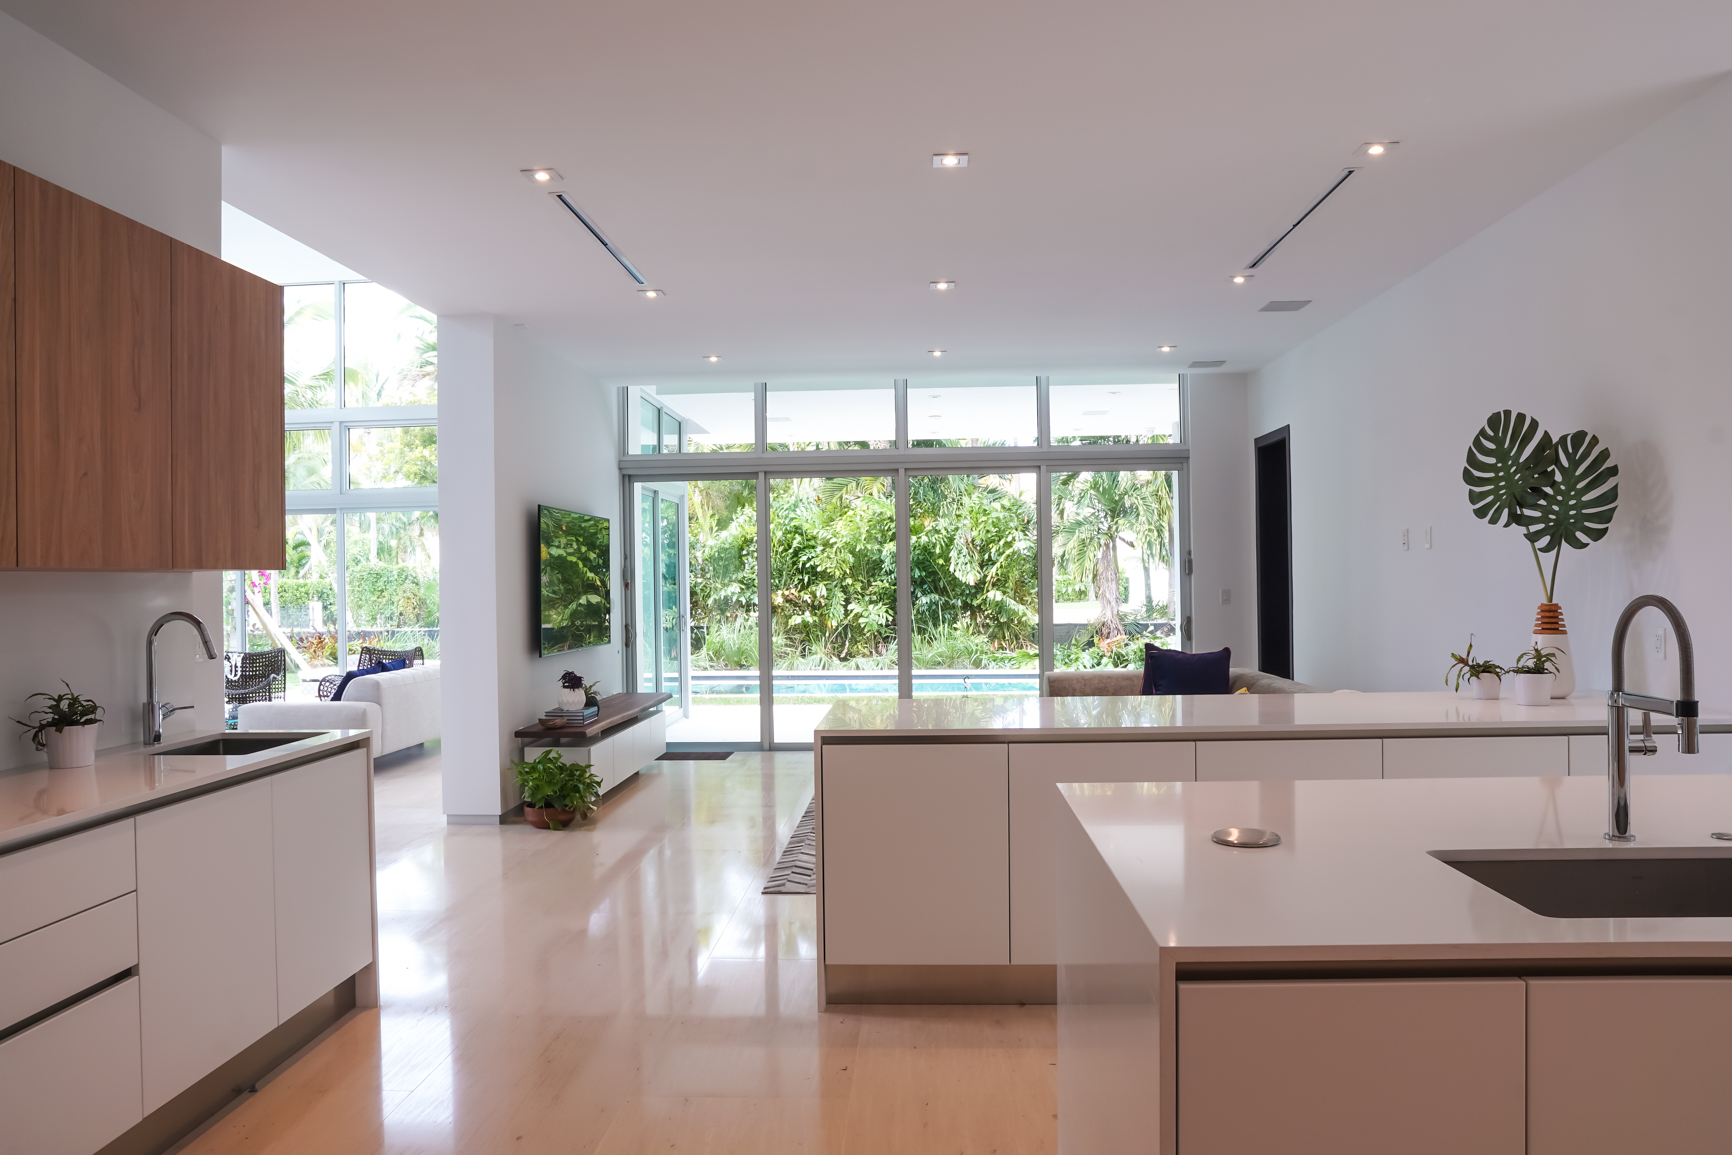 Bal Harbour Tropical Residence High-end Builder Contractor Miami Florida Luxury powder bathroom interior design kitchen dining countertop waterfall island